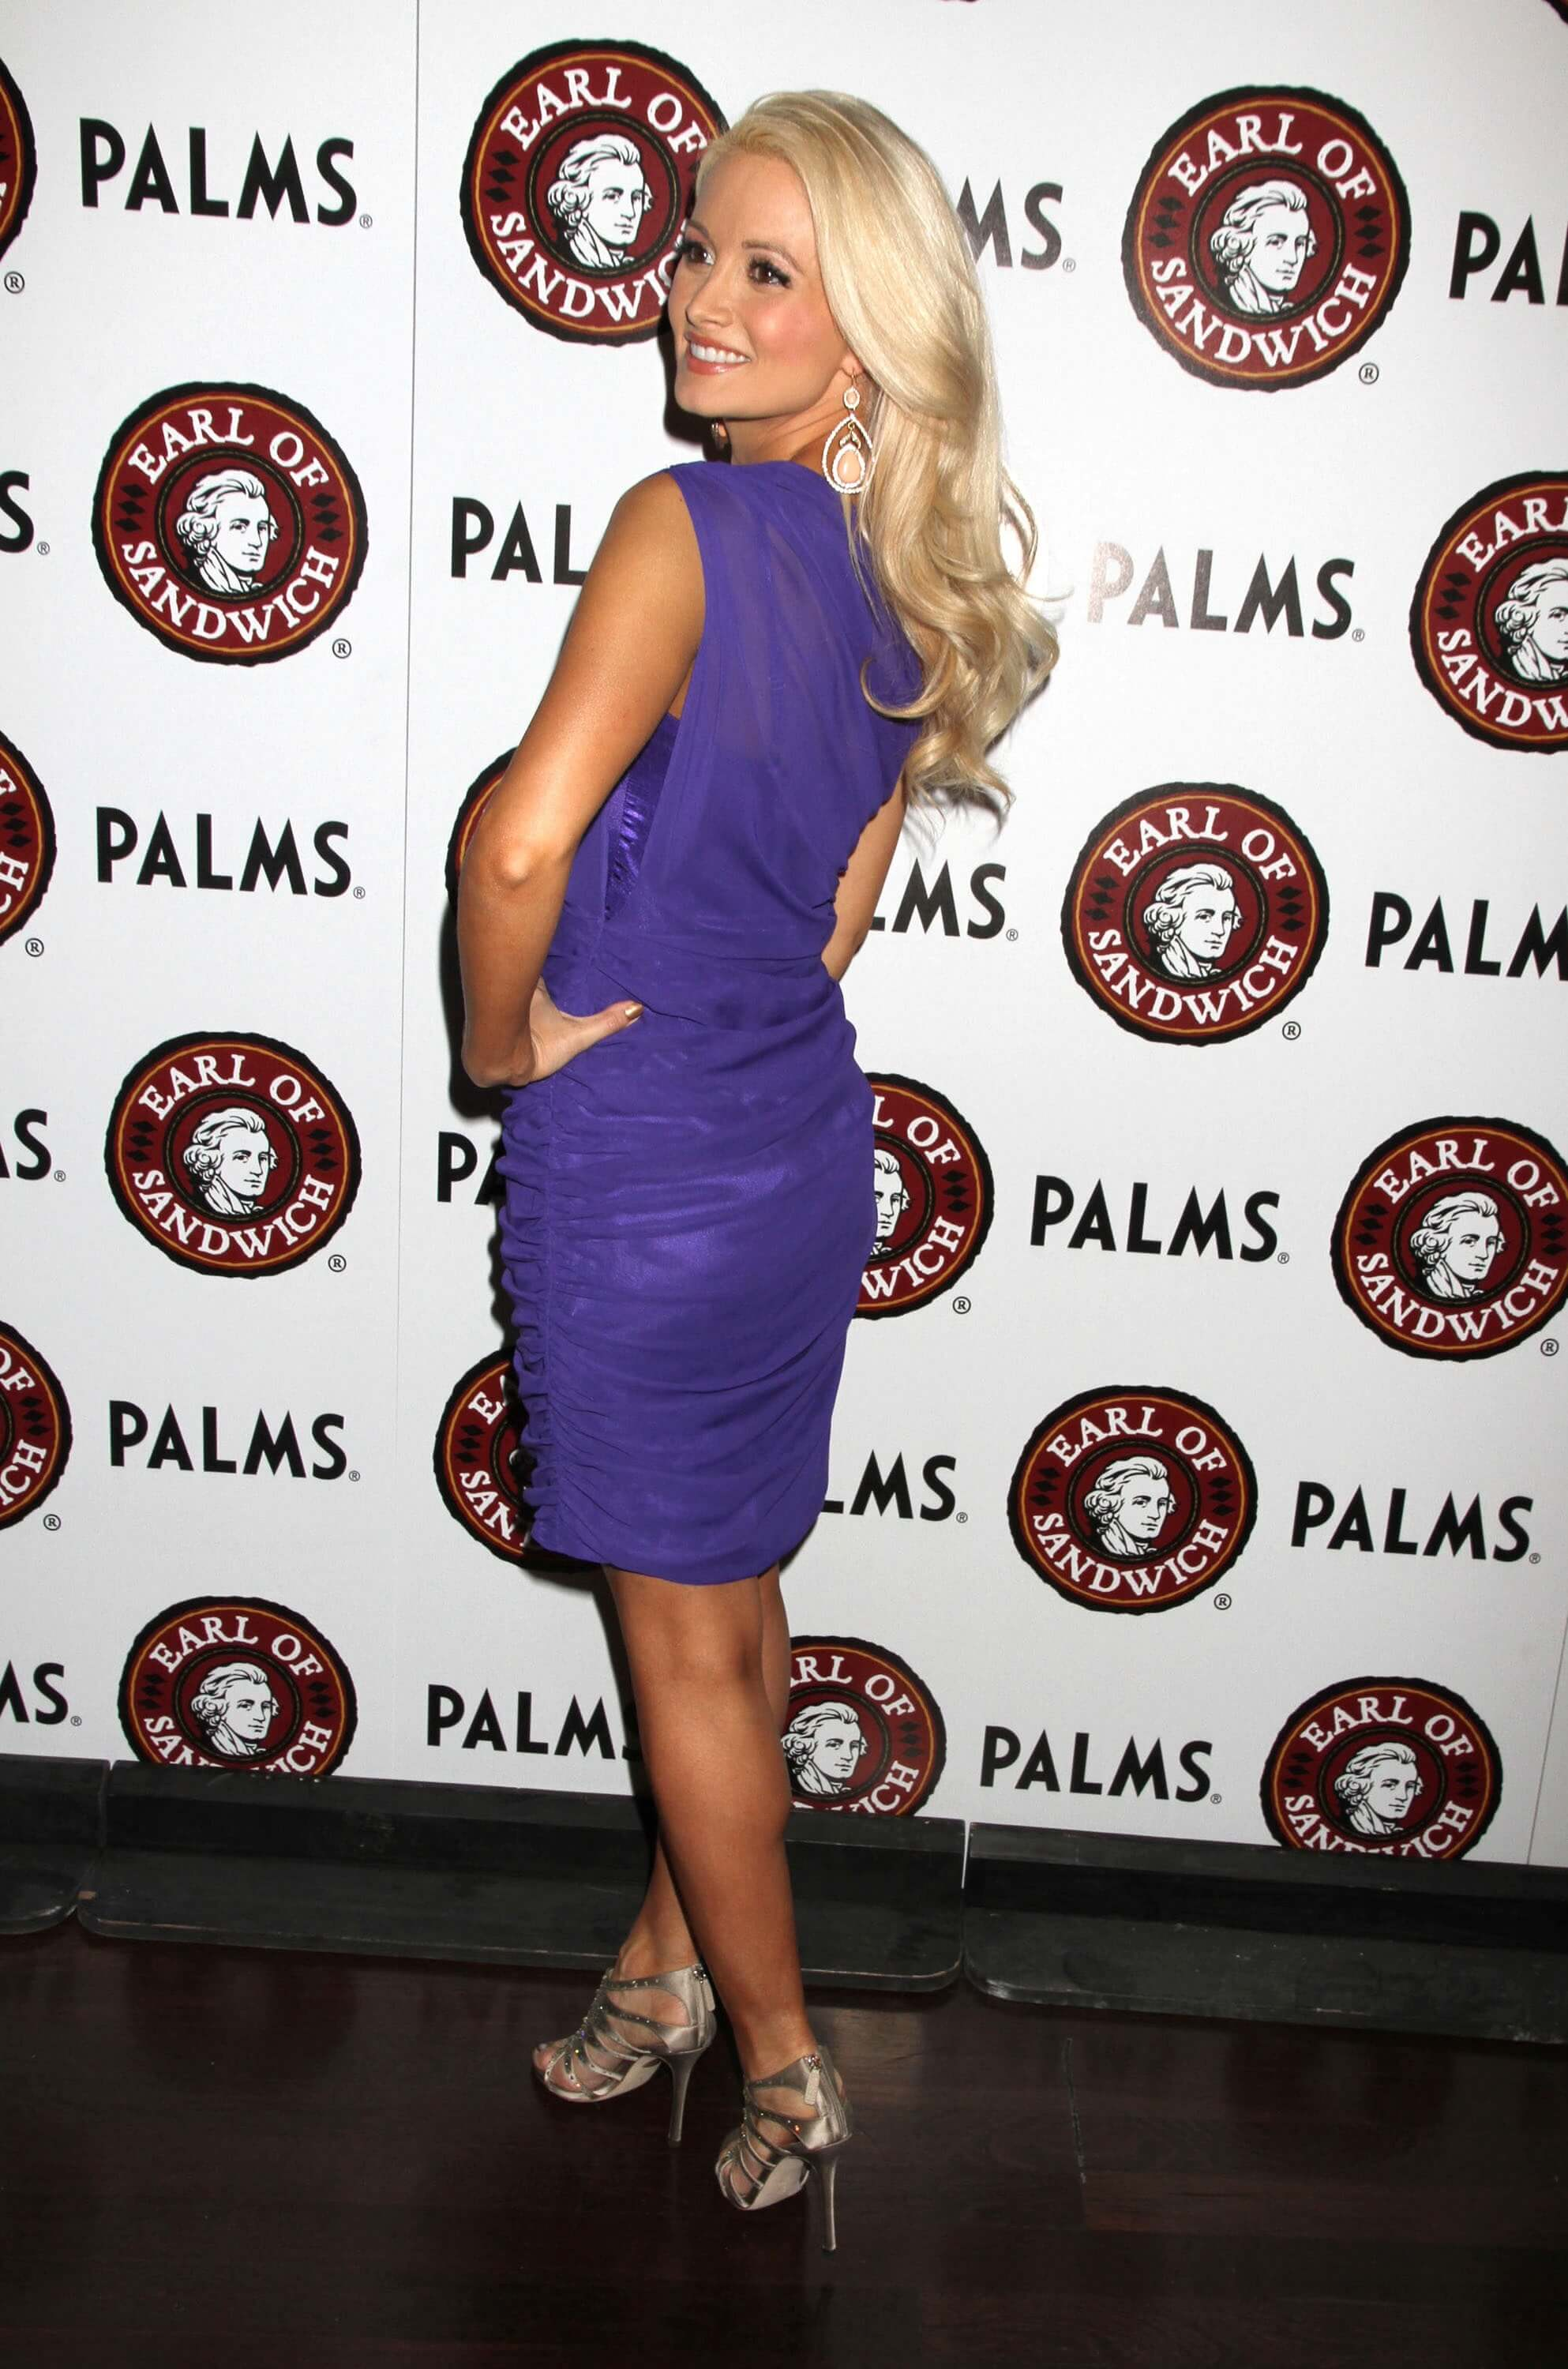 holly madison ass pics